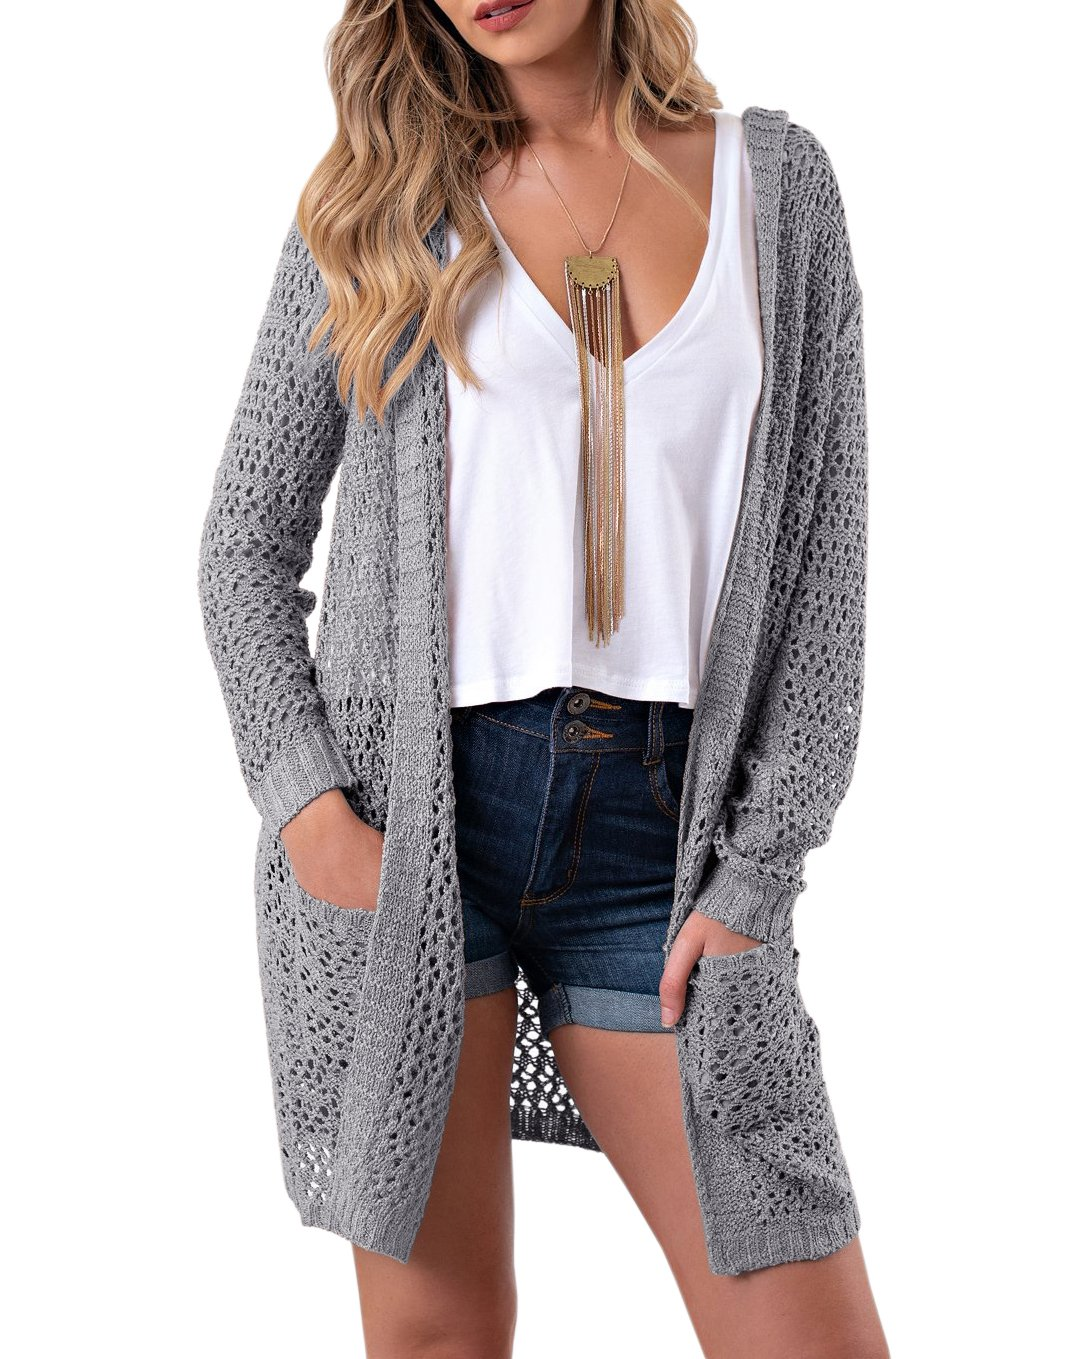 Sherrylily Womens Summer Cardigans Casual Hoodie Open Front Long Sleeve Sweater Jackets Pockets